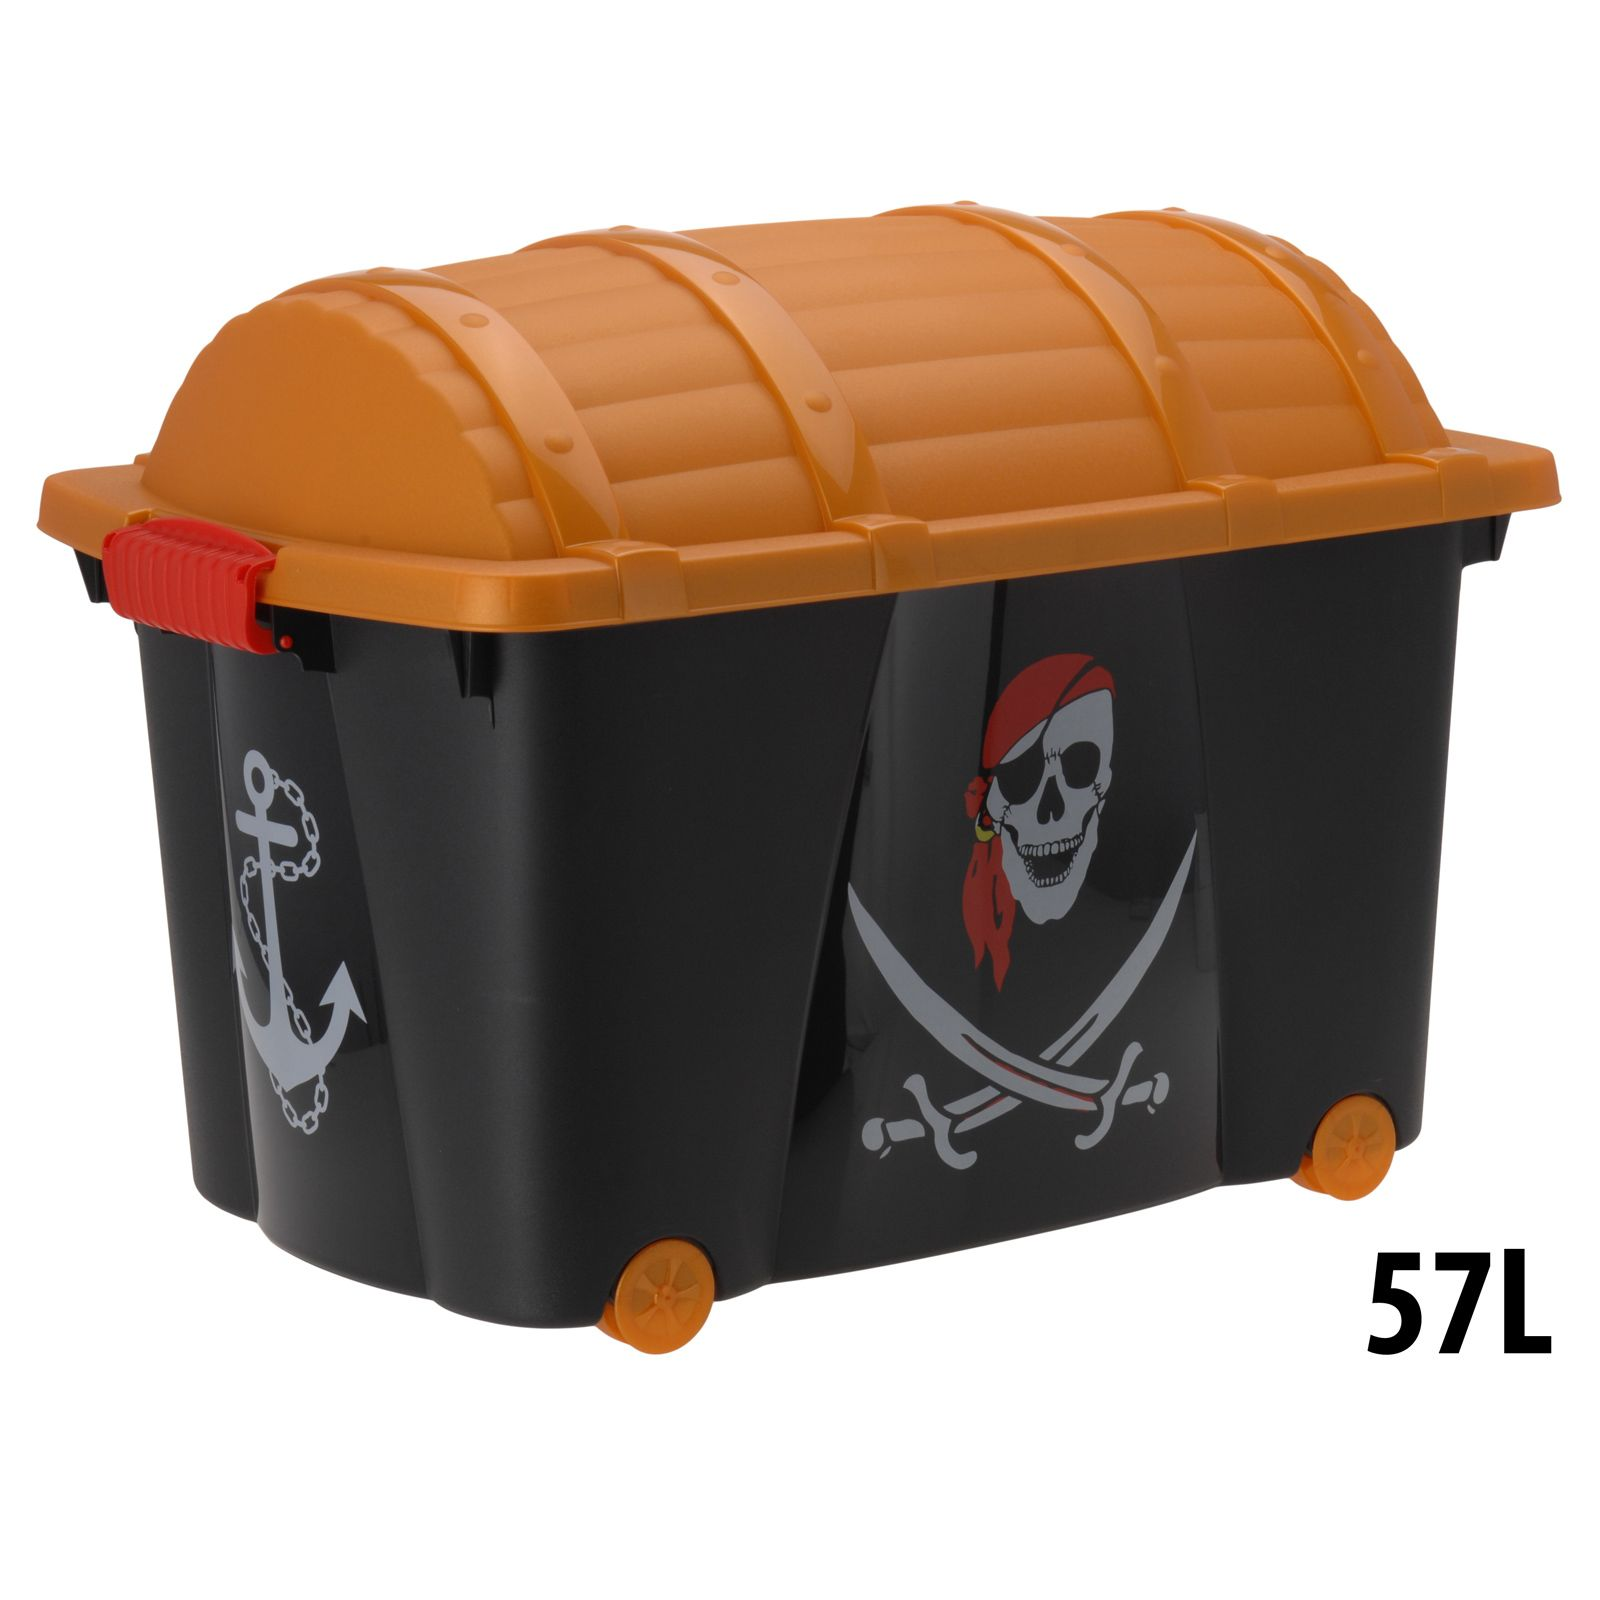 container plastic box toys | Pirate Childrens Plastic Storage Container Toy Chest Box With Wheels .  sc 1 st  Pinterest & container plastic box toys | Pirate Childrens Plastic Storage ... Aboutintivar.Com